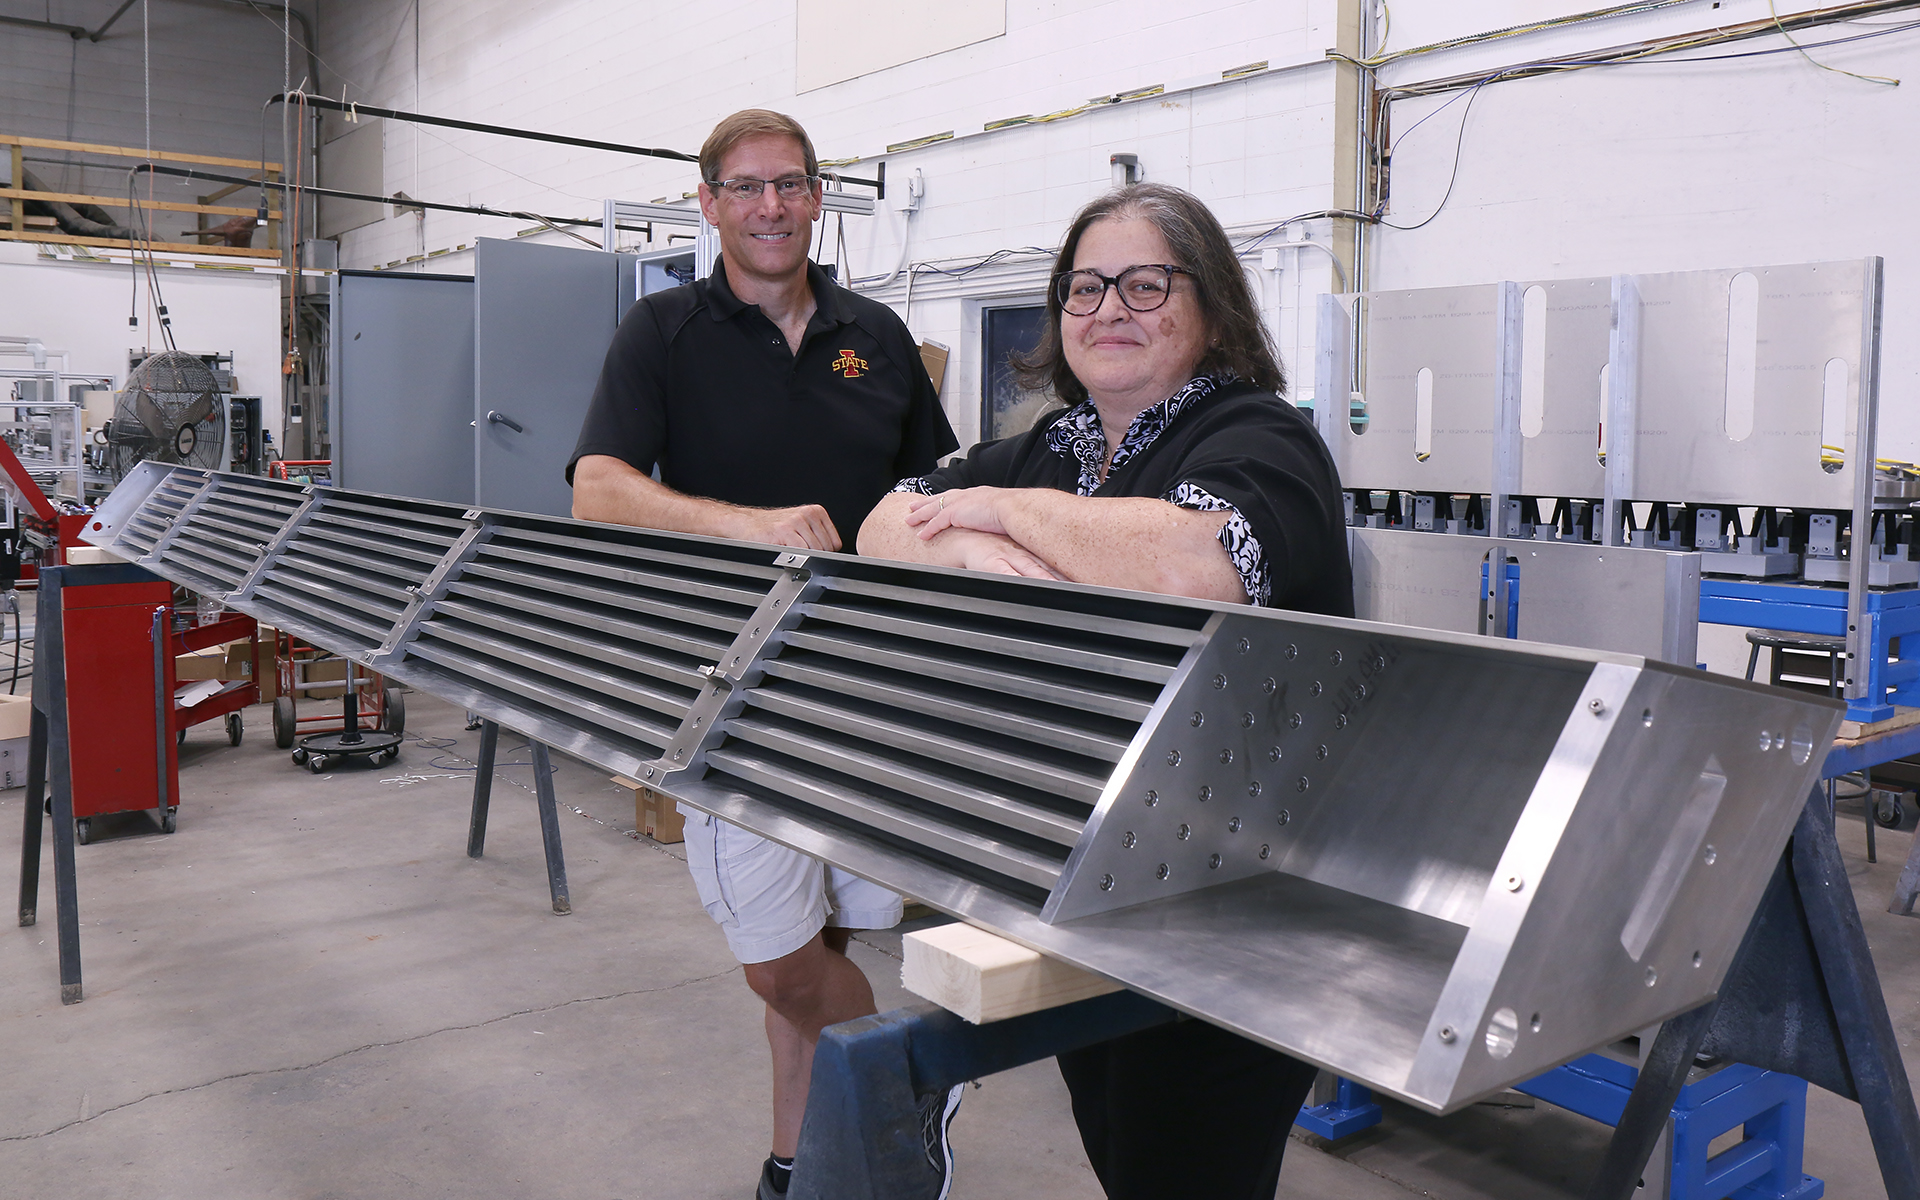 A man and woman stand by metal equipment.